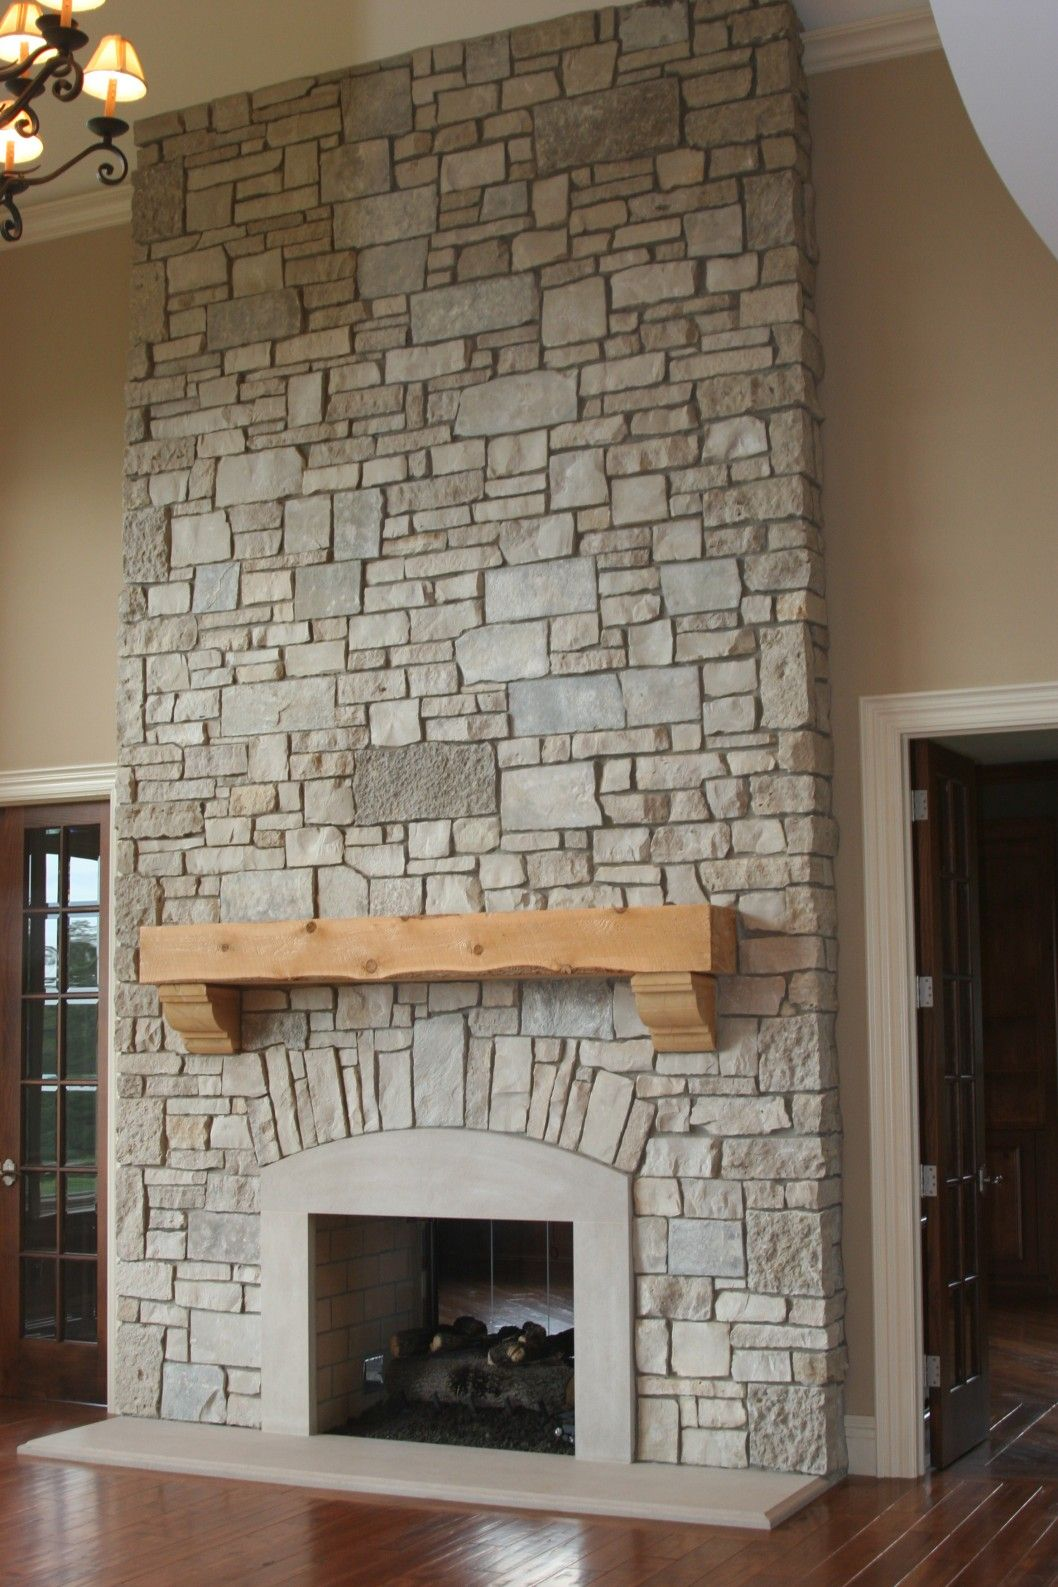 Architecture stone fireplace ideas wood mantels living room stone wall tiles cast stone fireplace mantels cast stone fireplace surround limestone fireplace